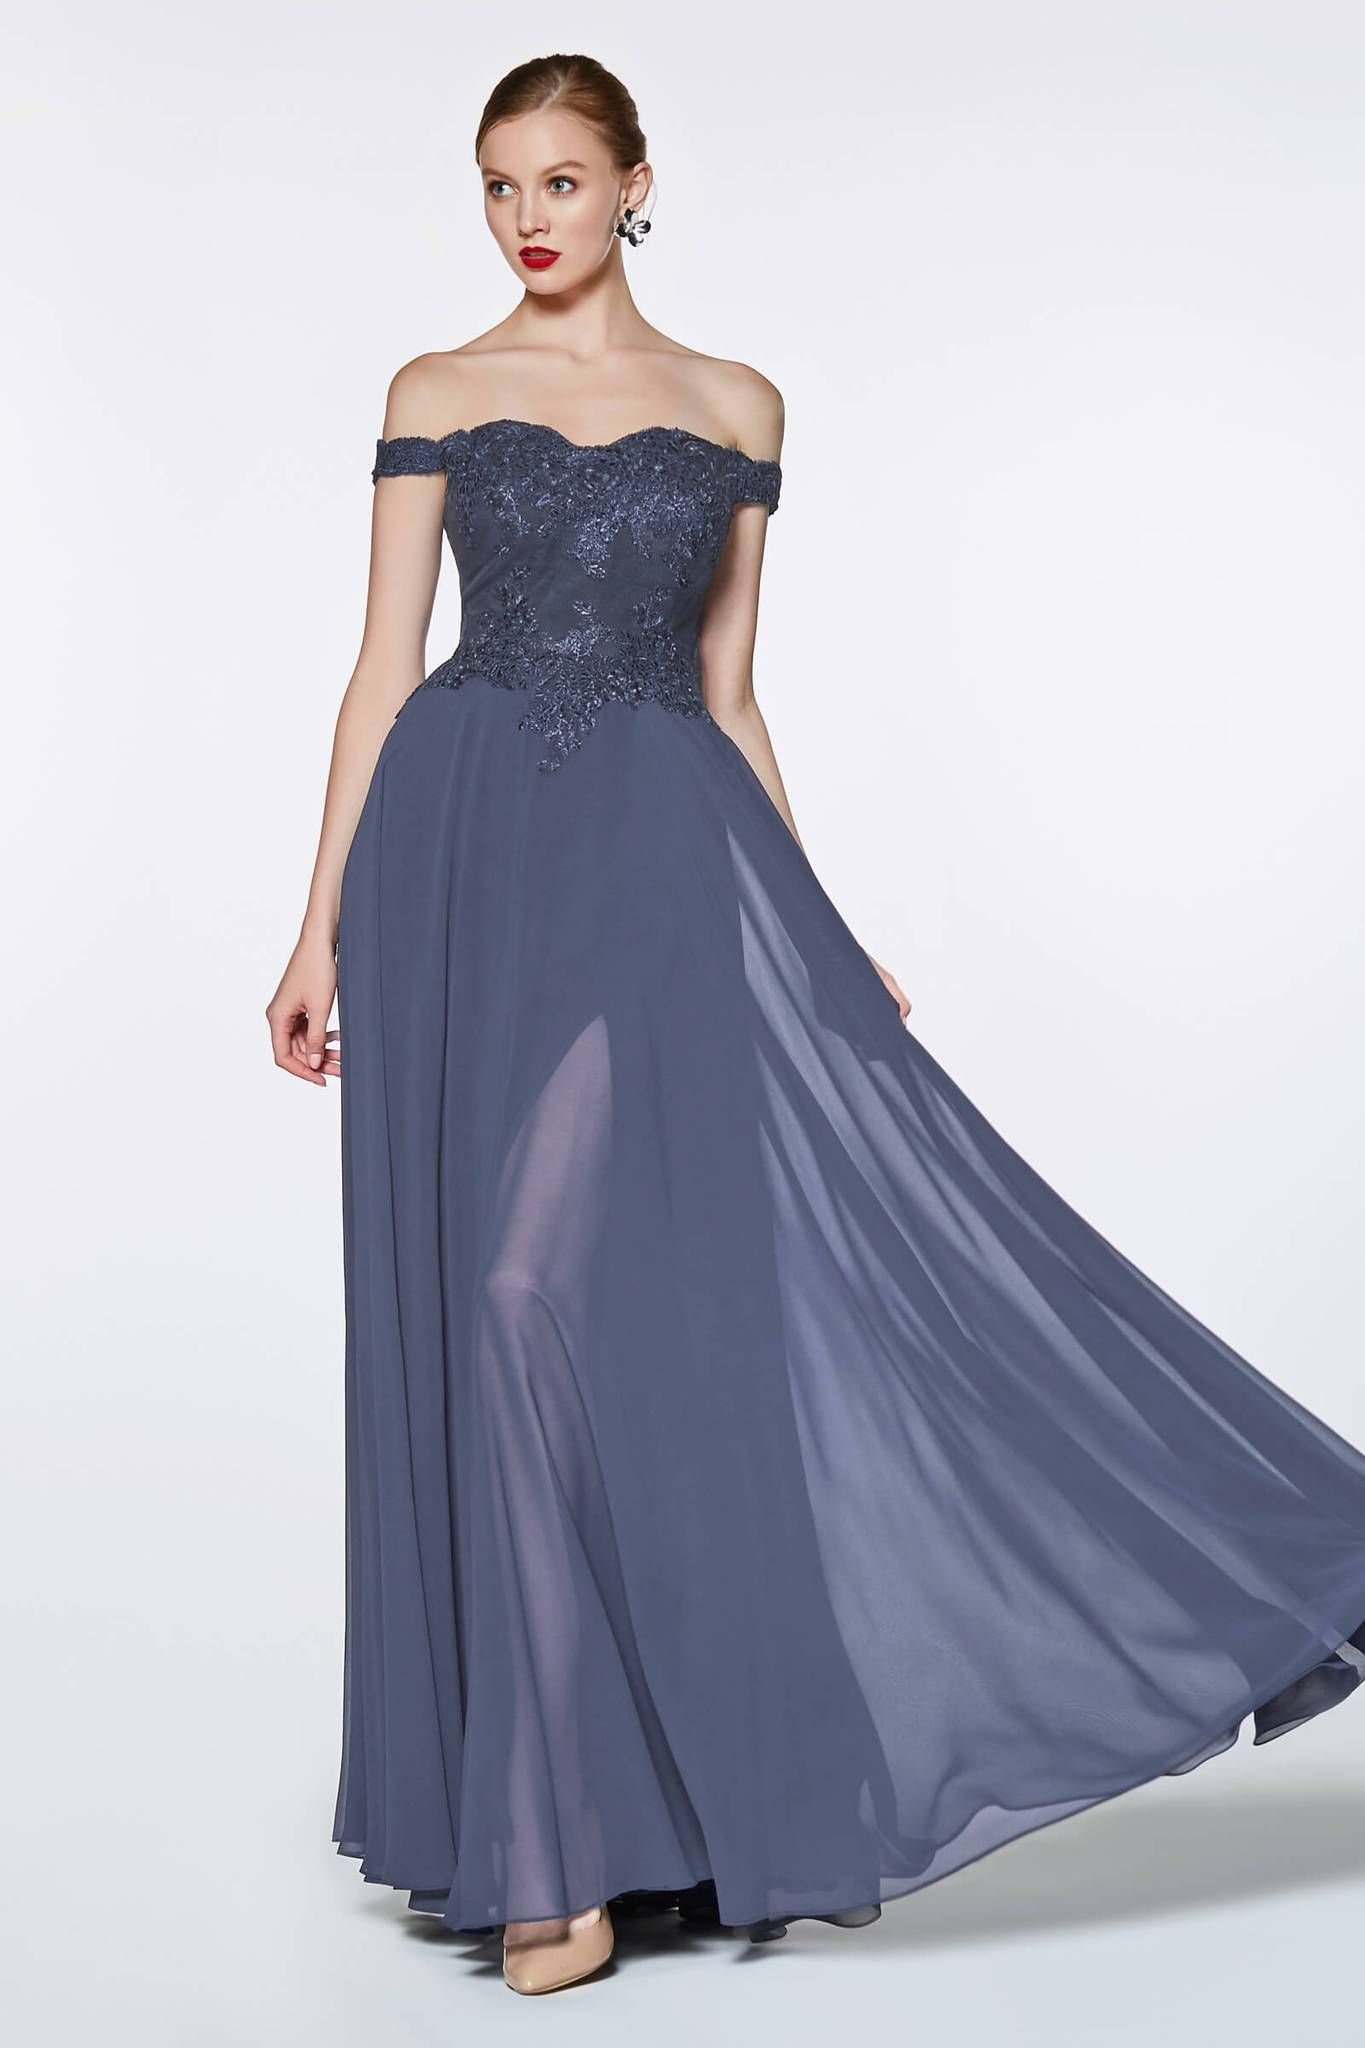 83928e3165d Long Off Shoulder Prom Dress Evening Gown in 2019